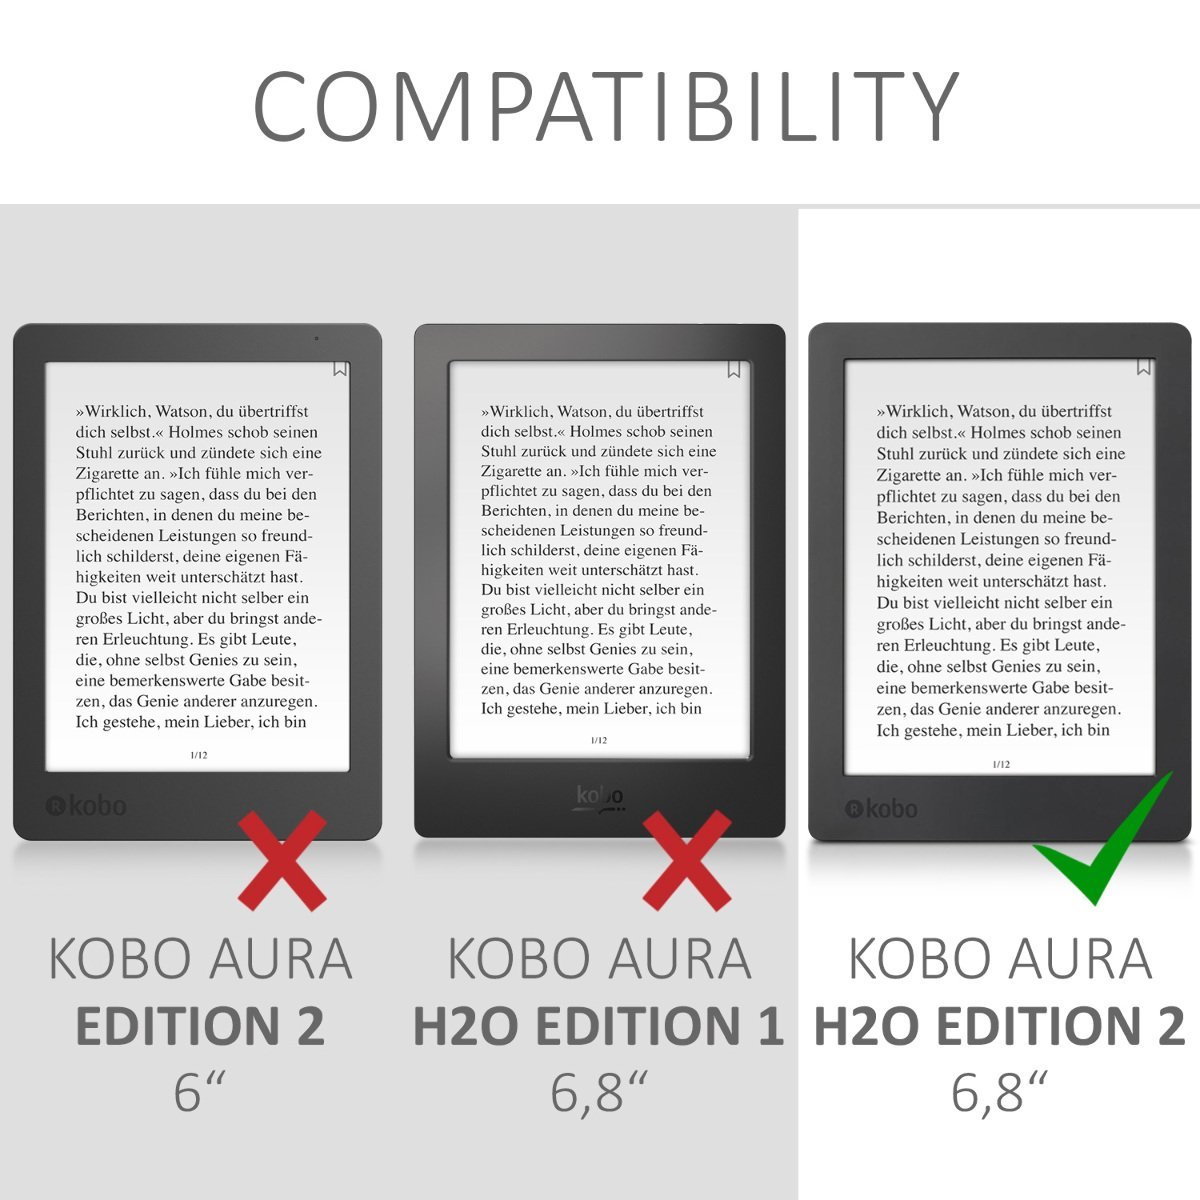 kwmobile Flip cover case for Kobo Aura H2O Edition 2 - imitation leather foldable case in red by kwmobile (Image #7)